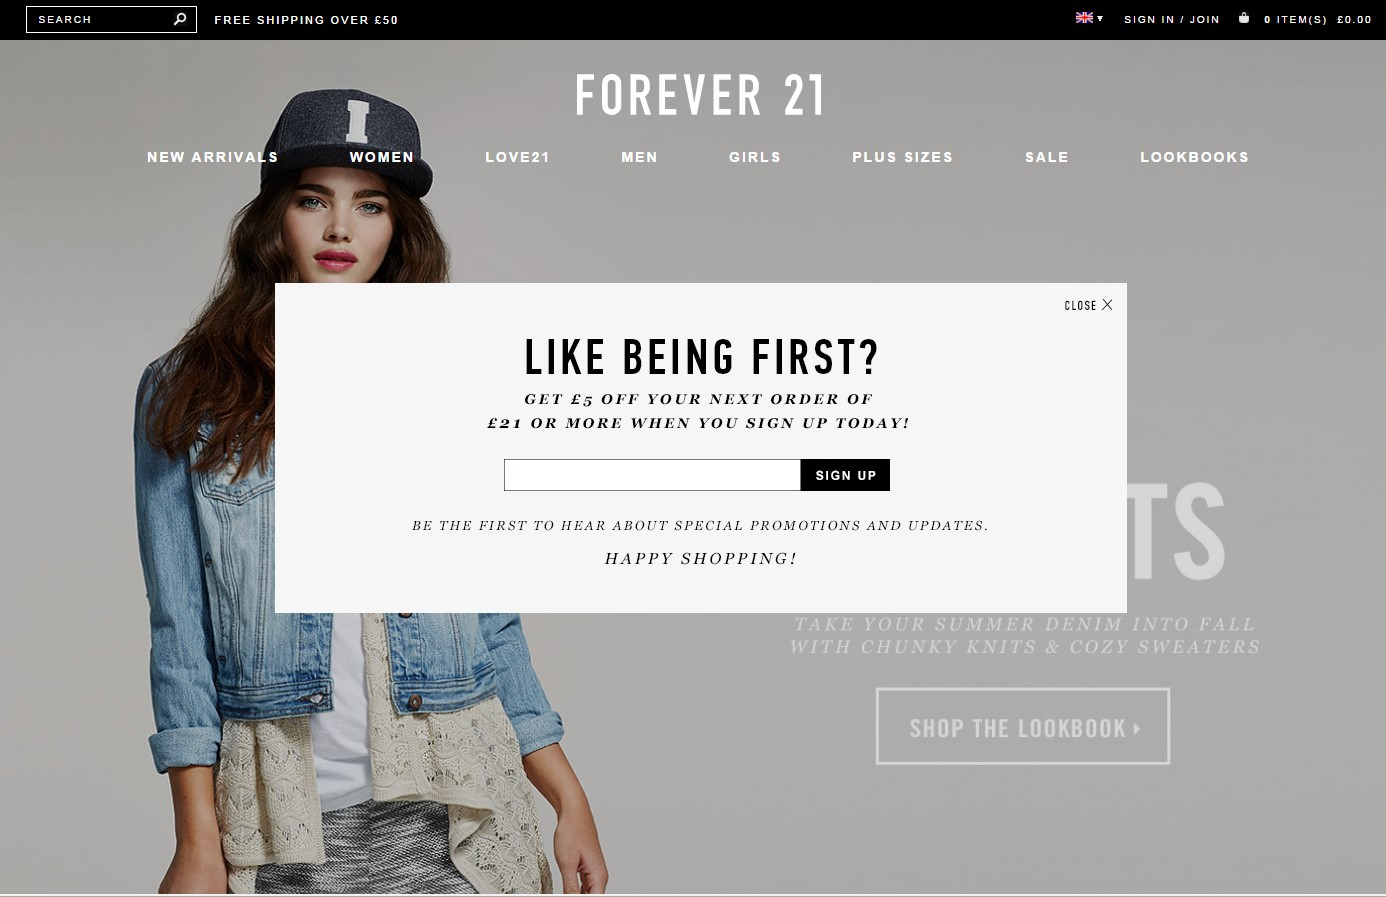 forever-21-sign-up